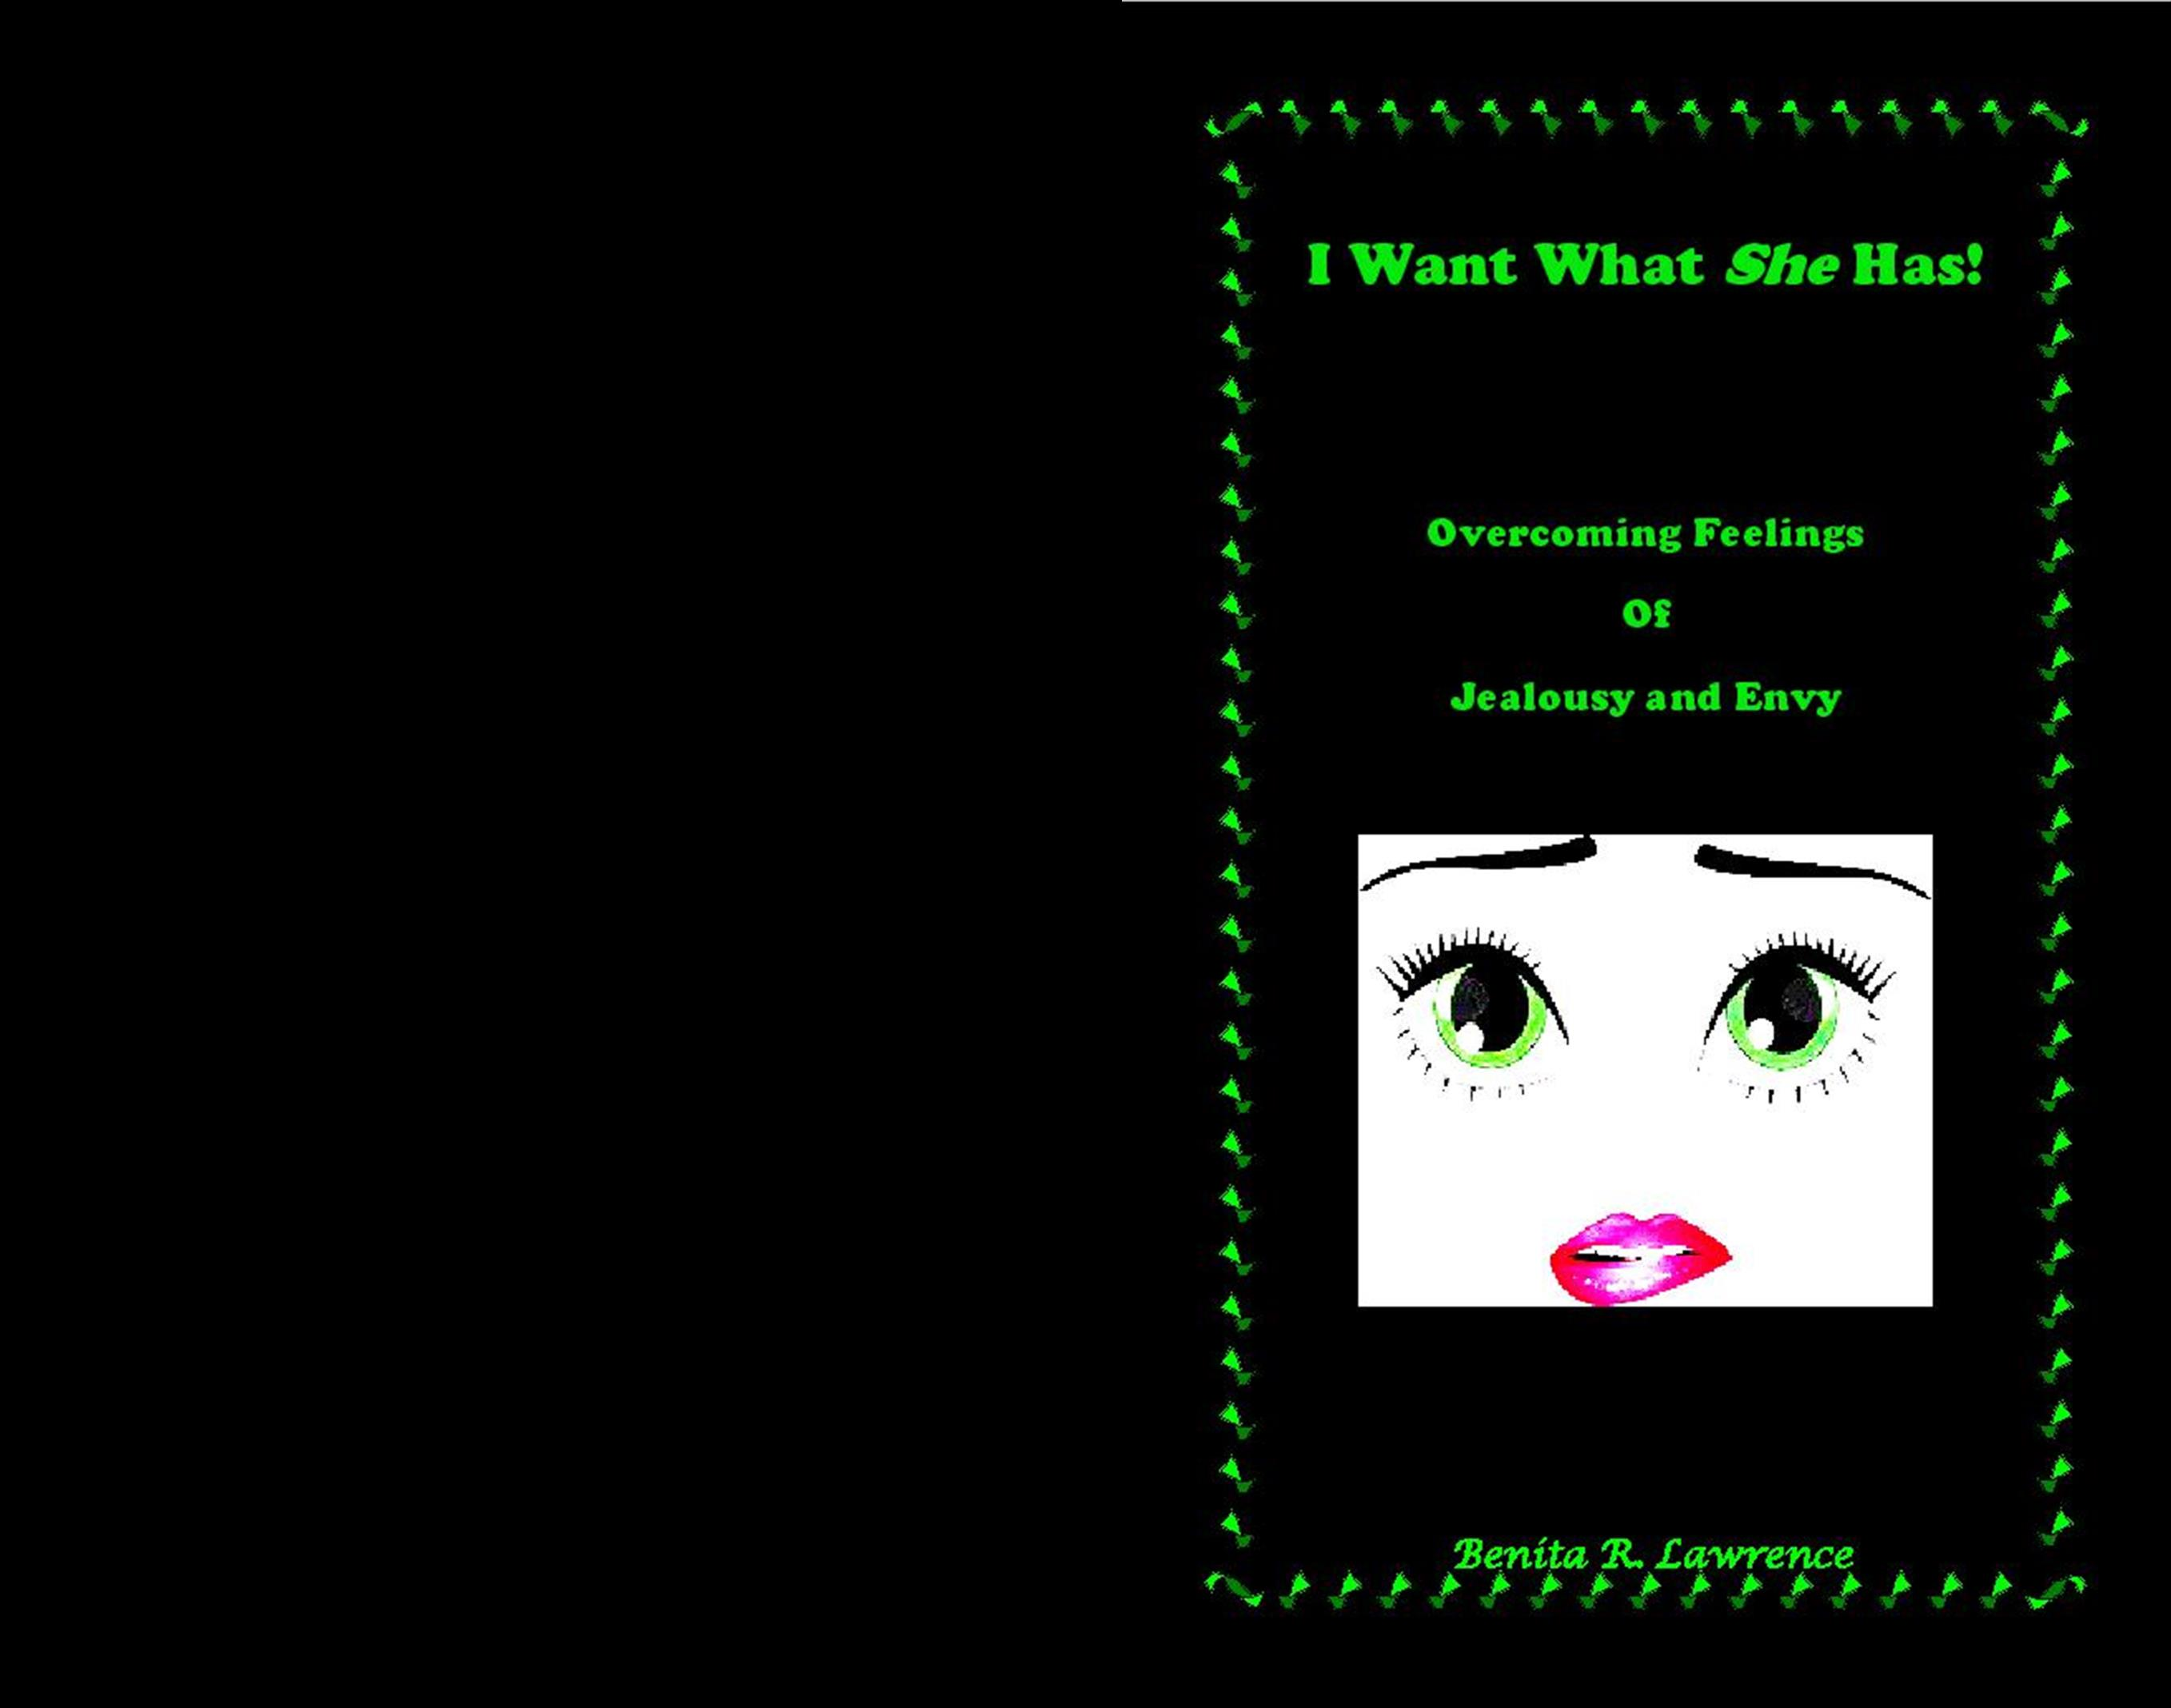 I Want What She Has! cover image